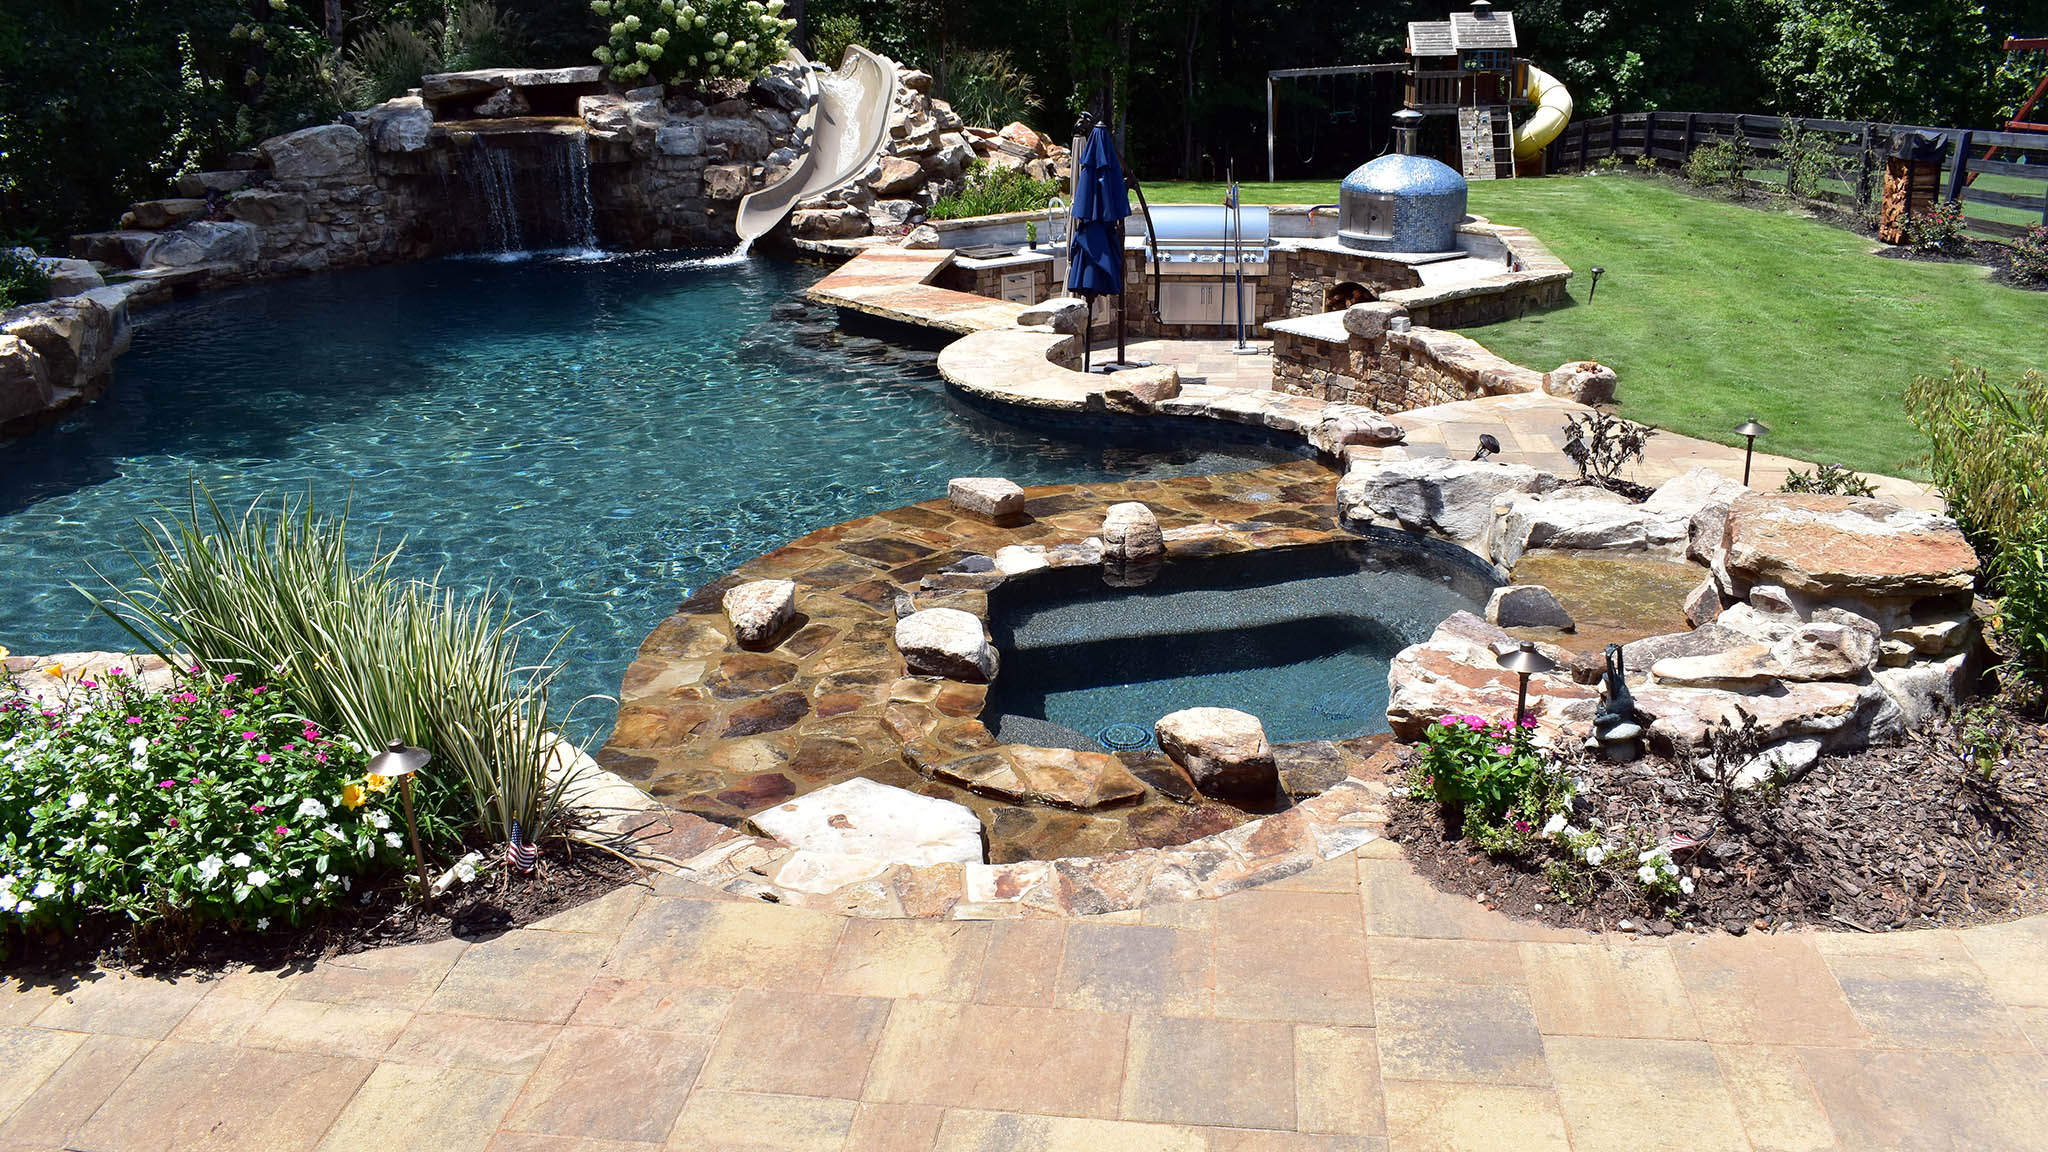 © Aqua Design Pools & Spas, LLC.